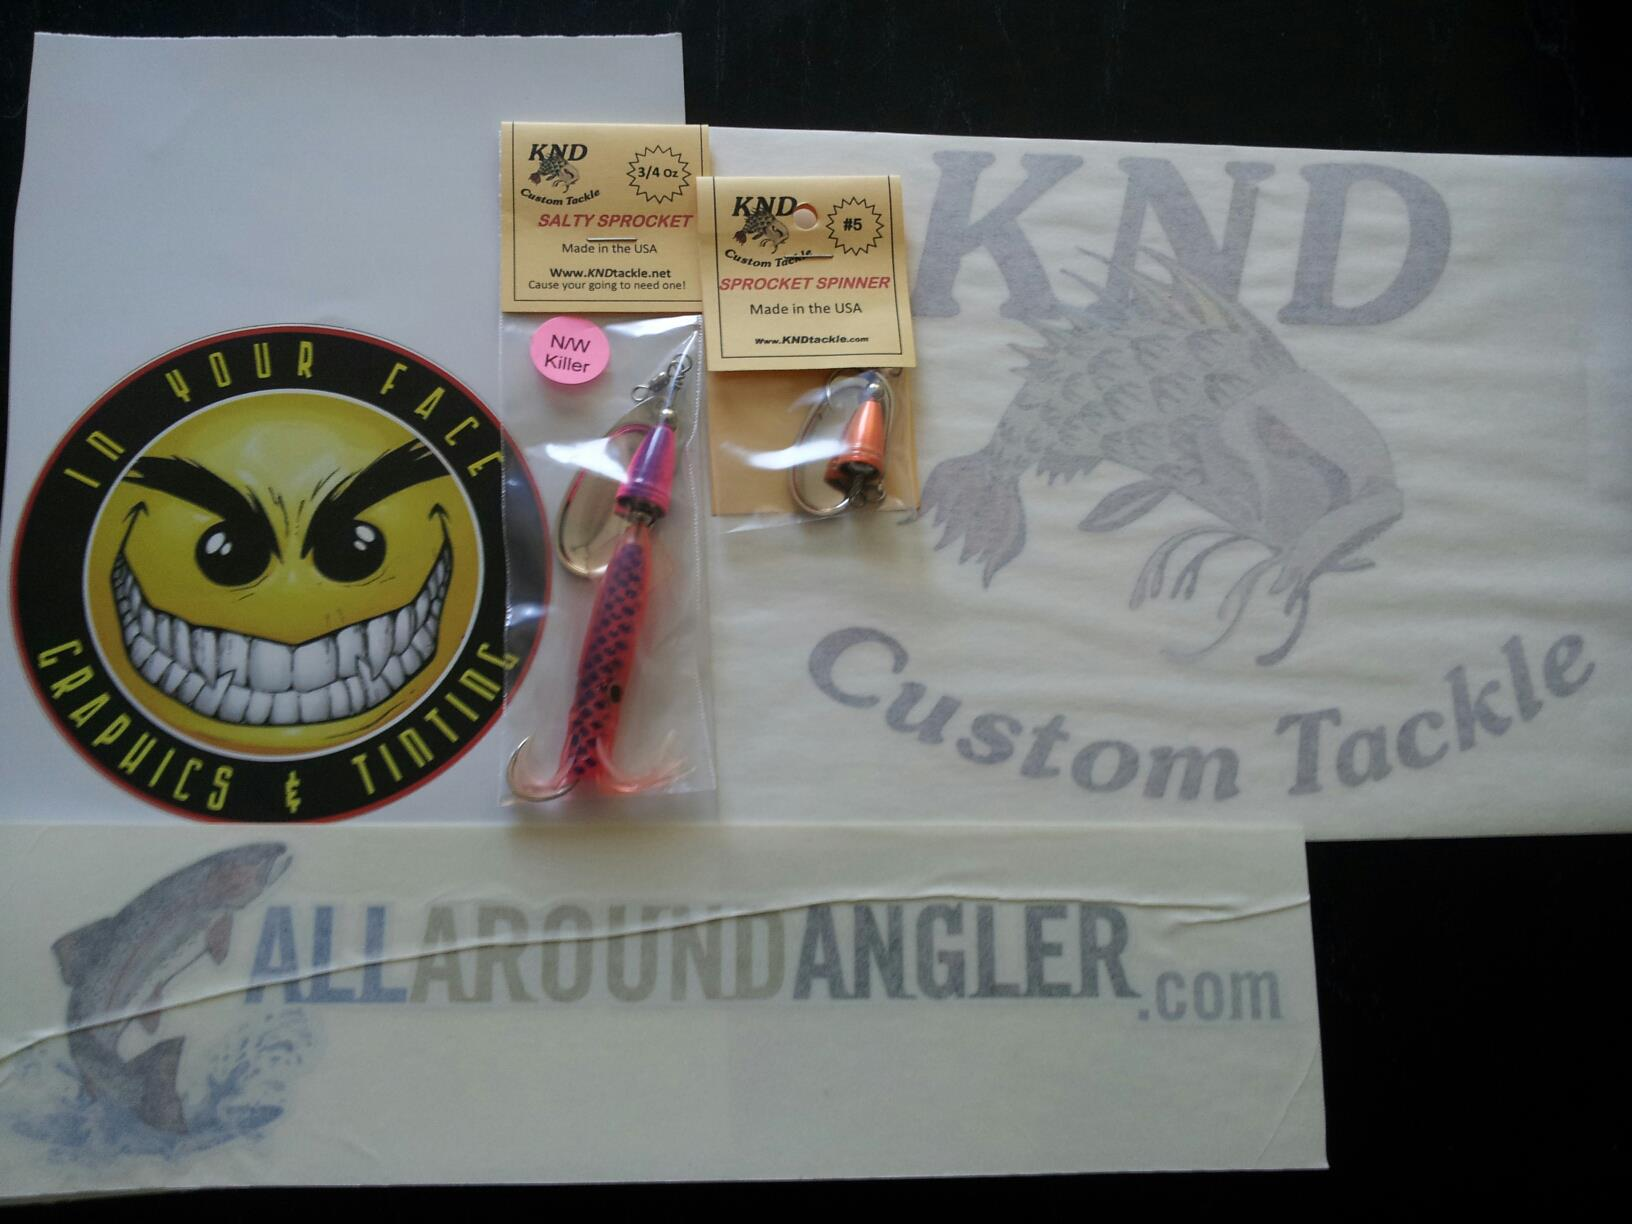 Free fishing gear prizes and contests All Around Angler com